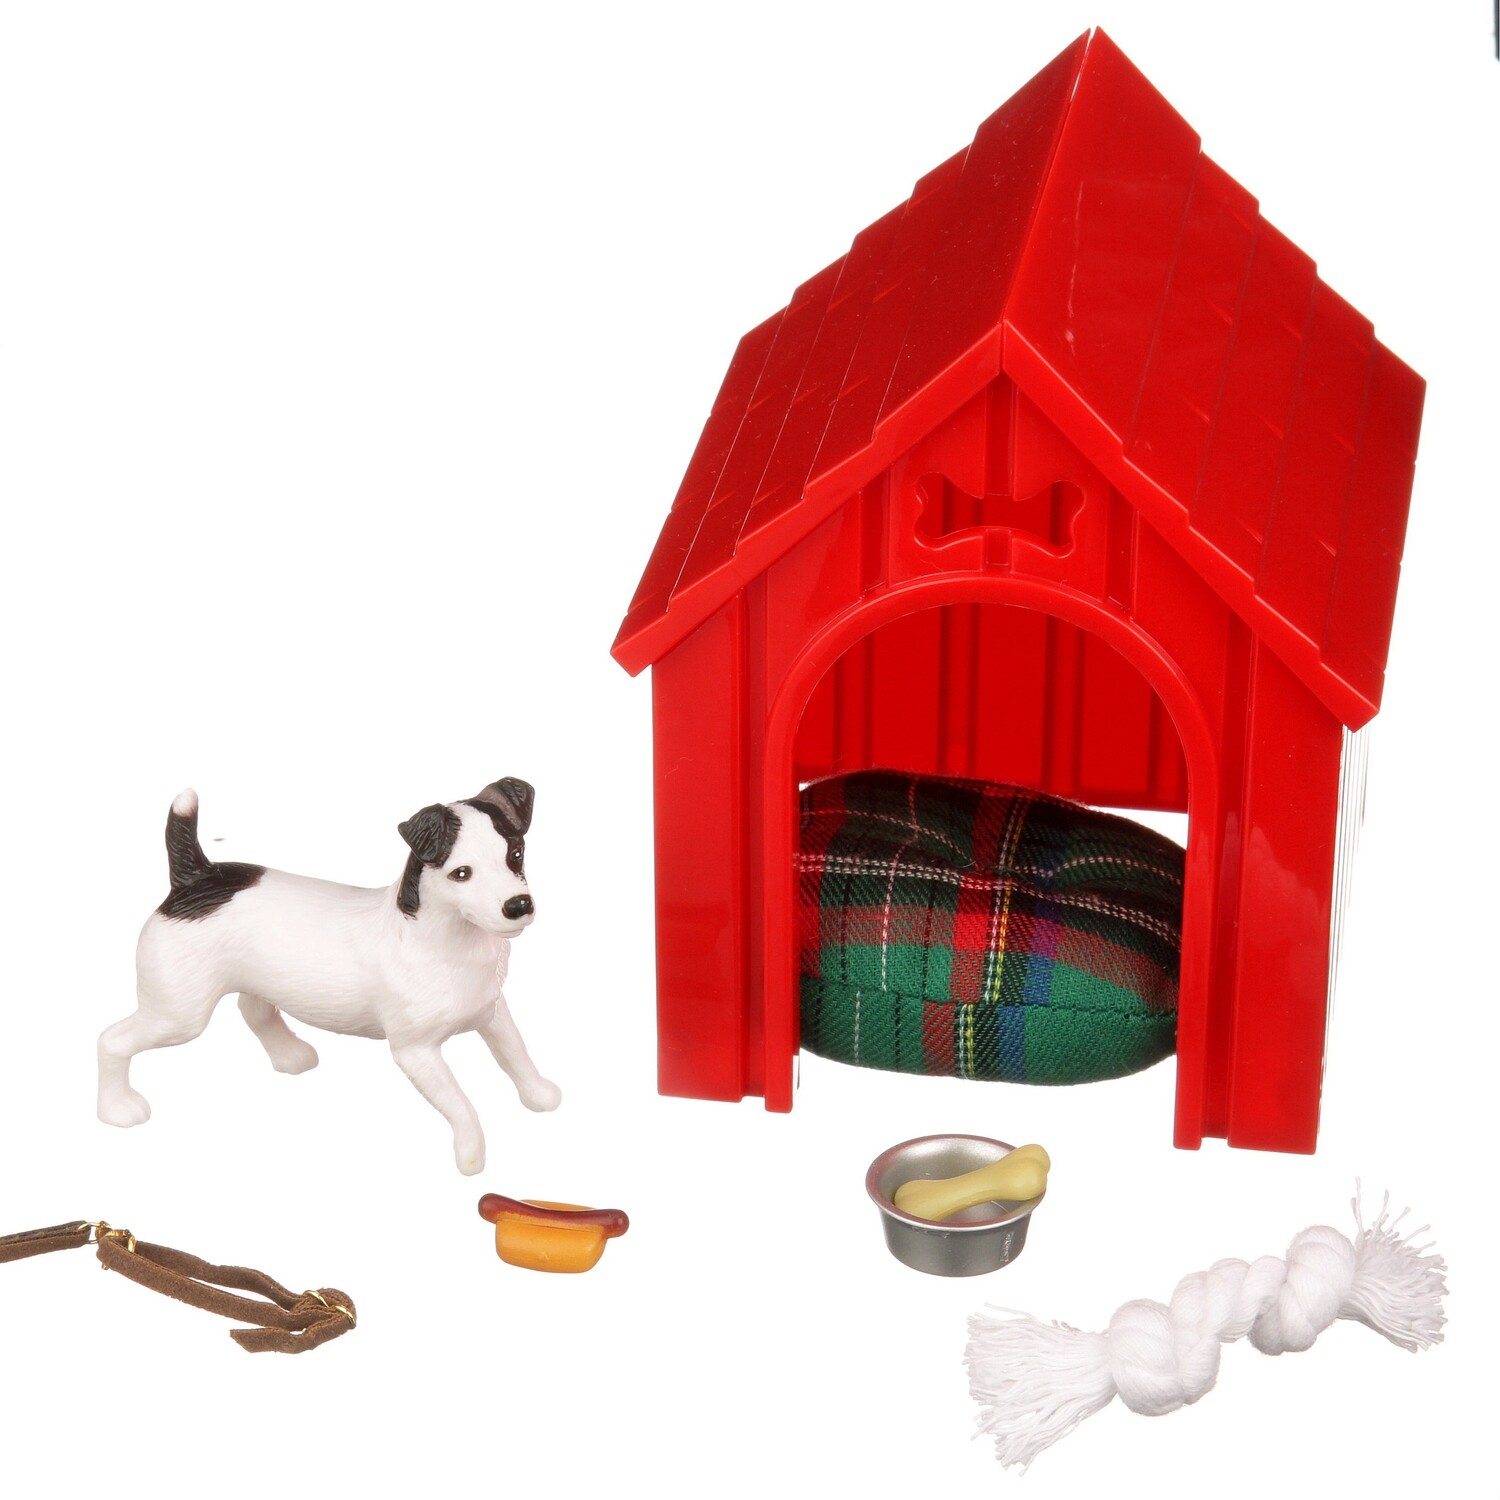 Stablemates: Dog House Play Set